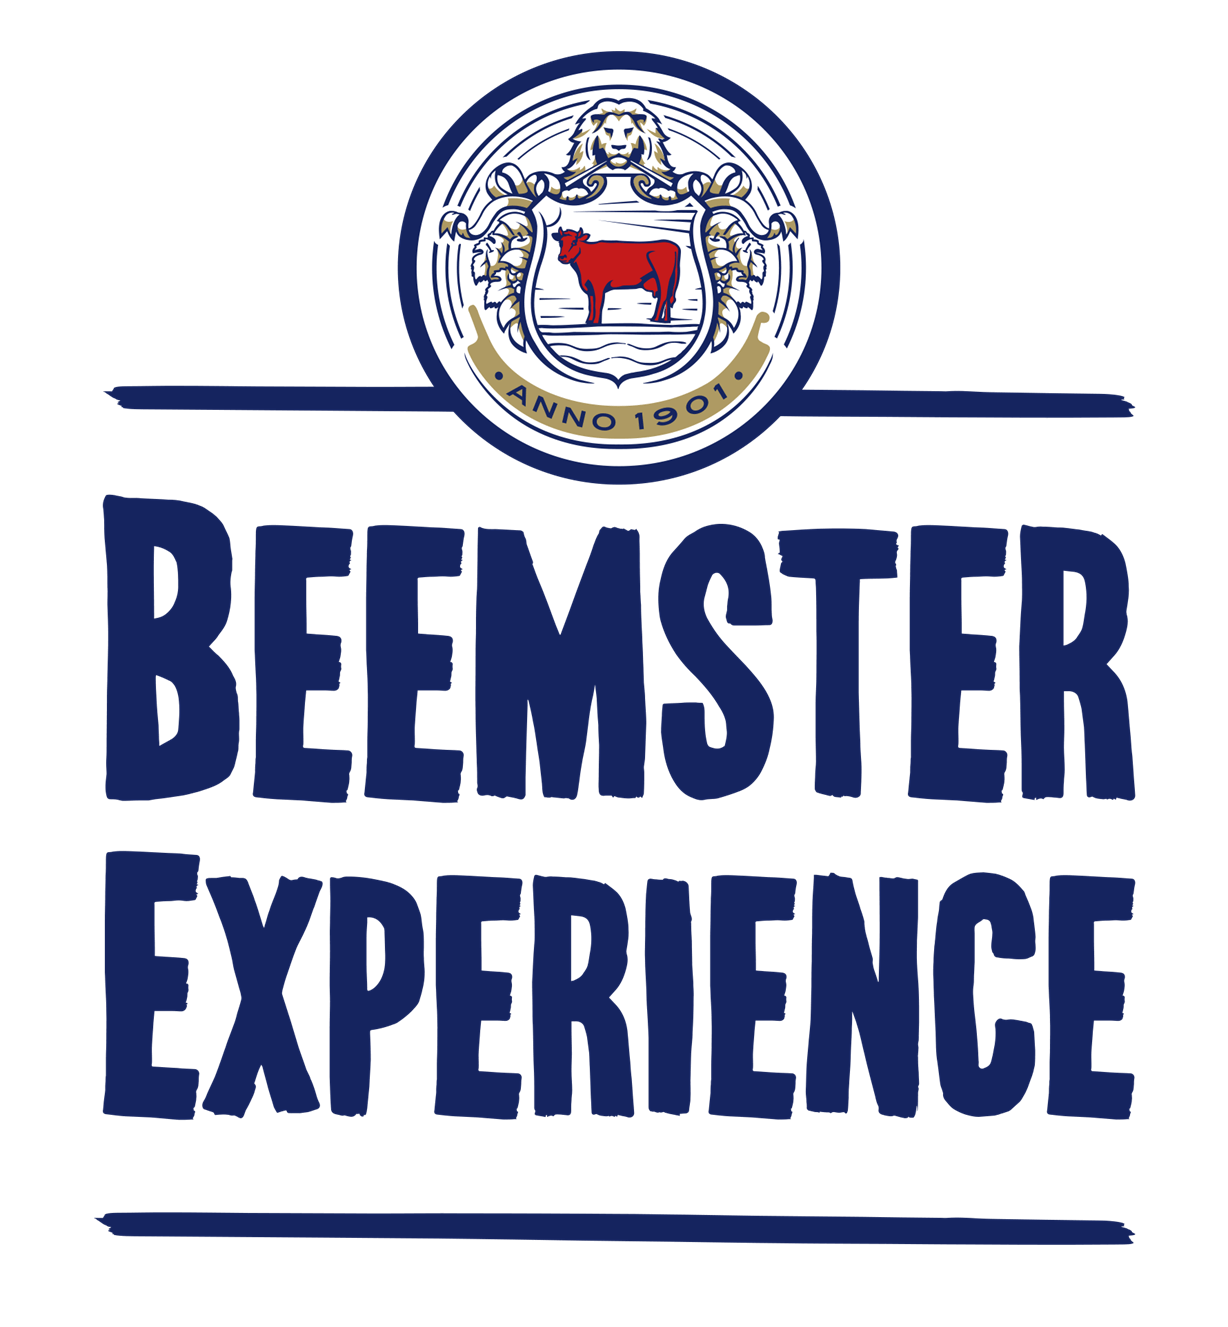 Beemster Experience logo